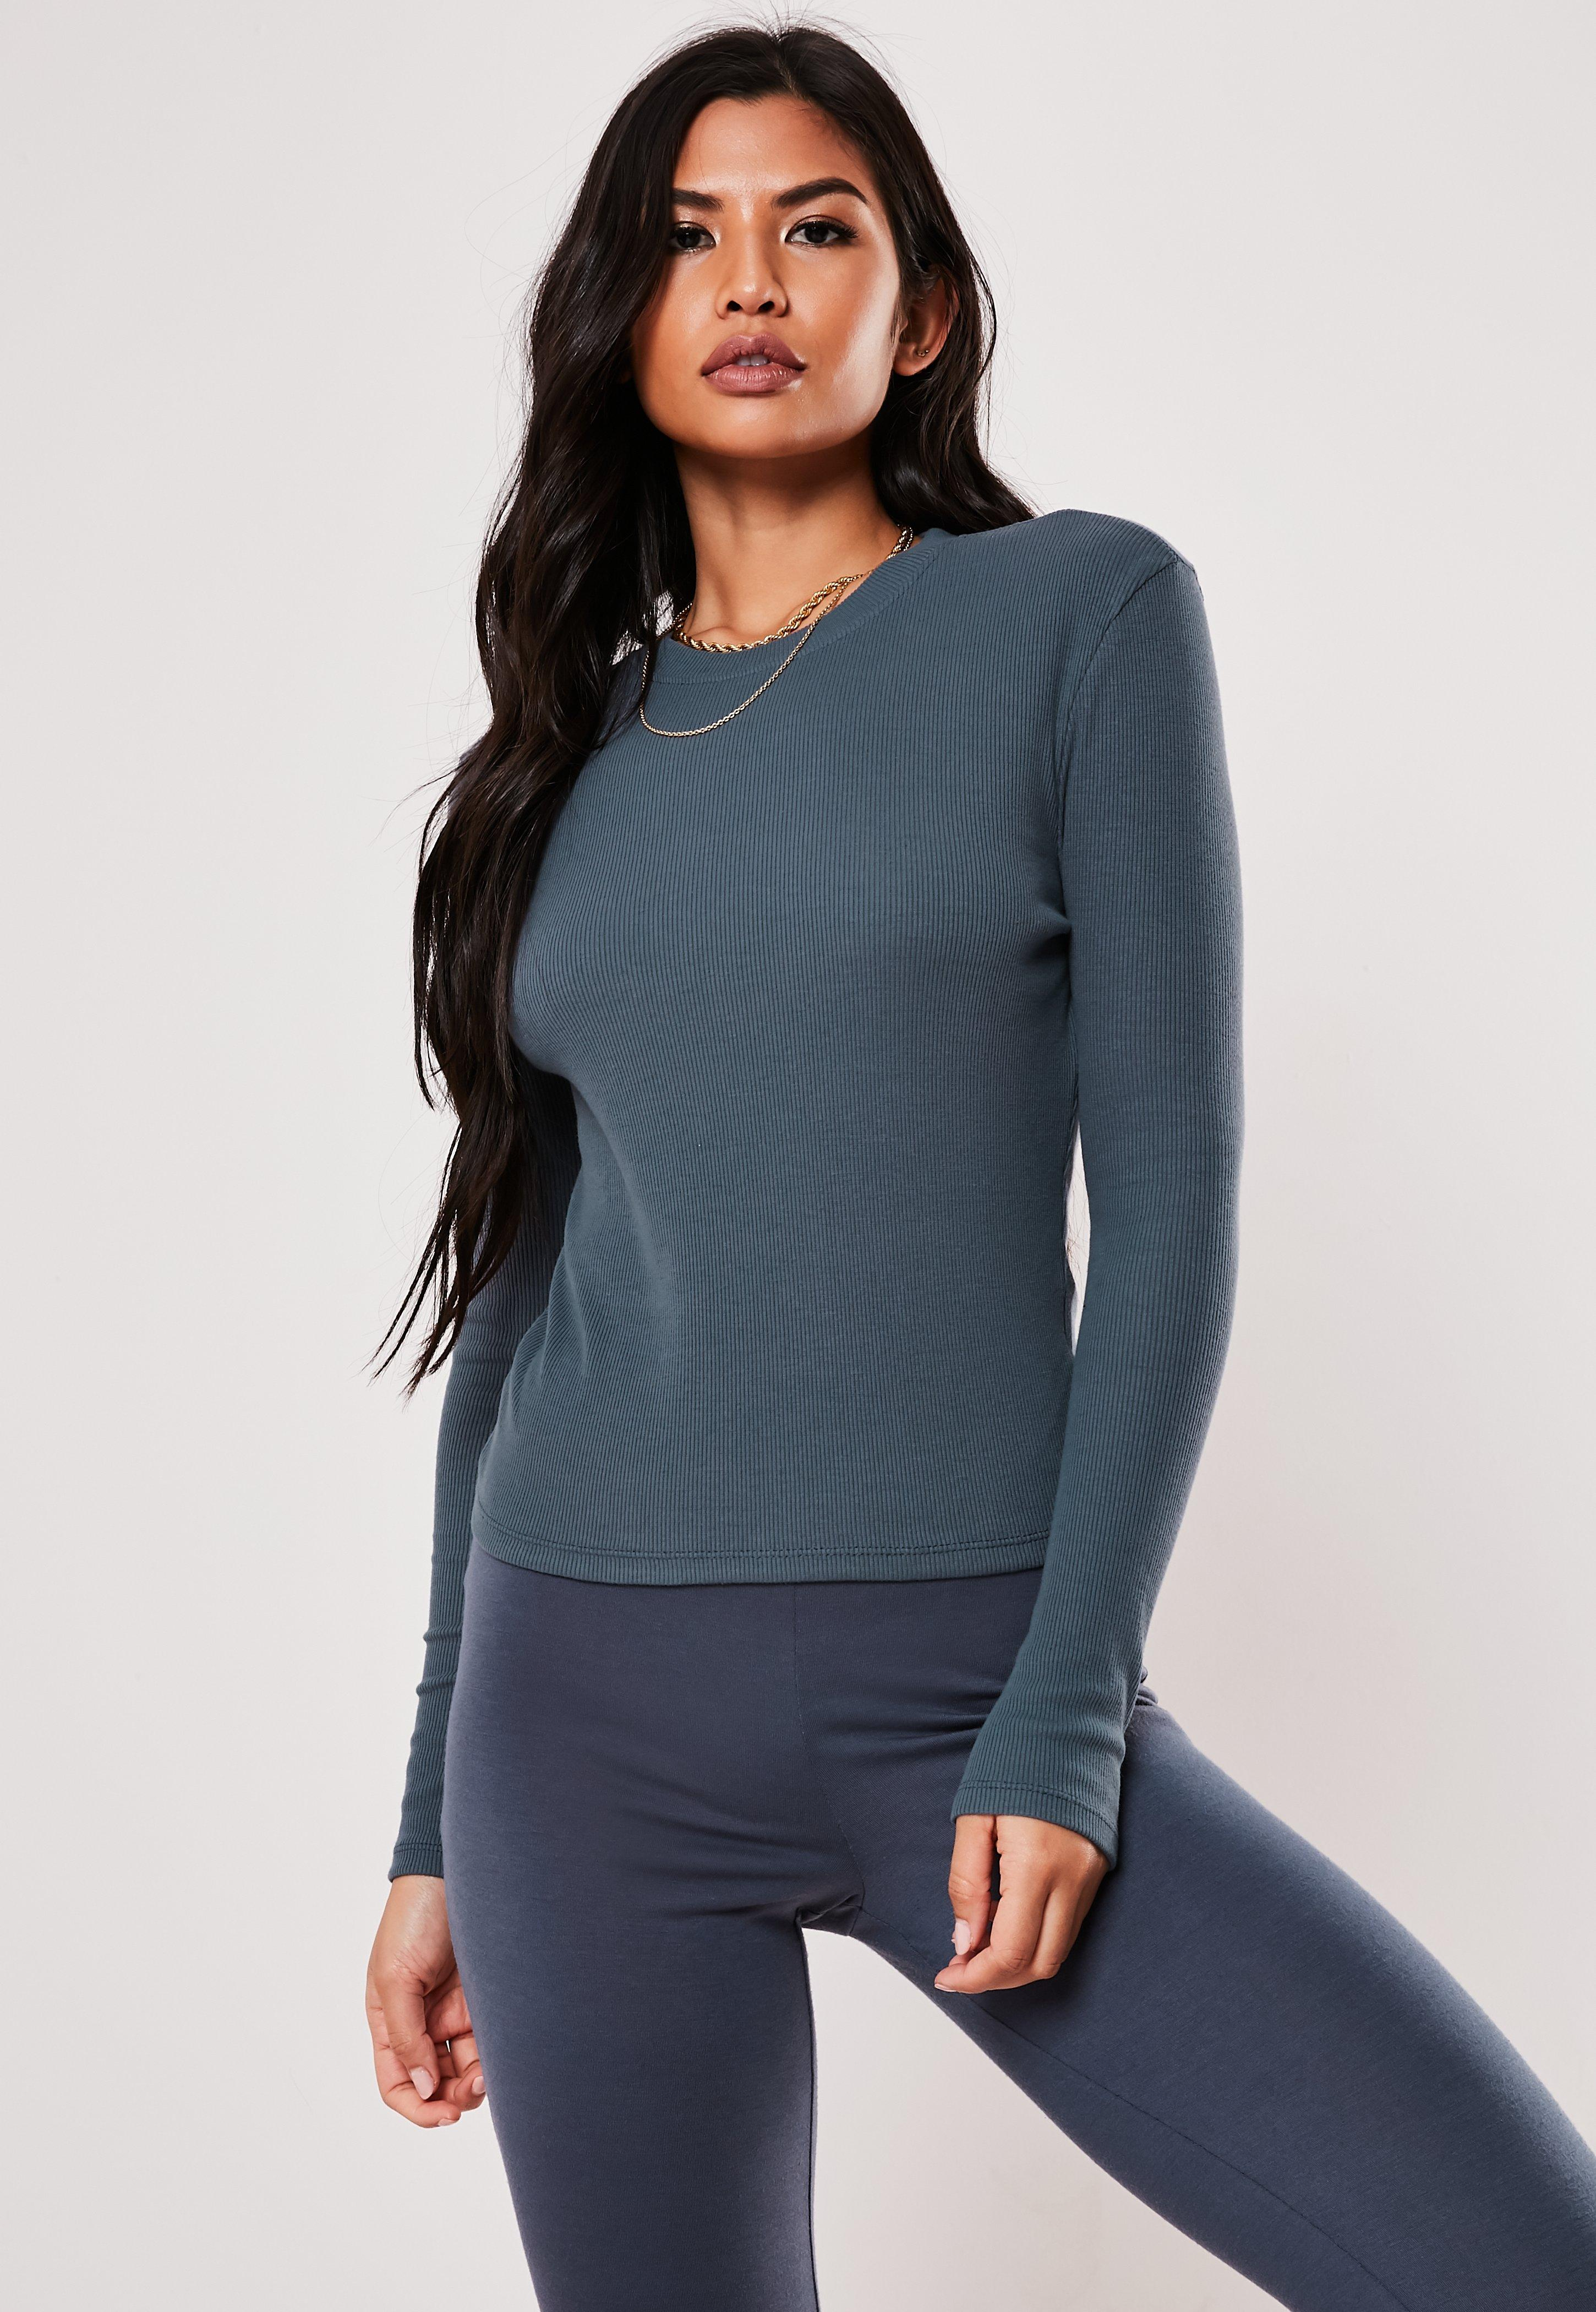 b46322abad1 Blue Tops | Navy & Cobalt Blue Tops | Missguided